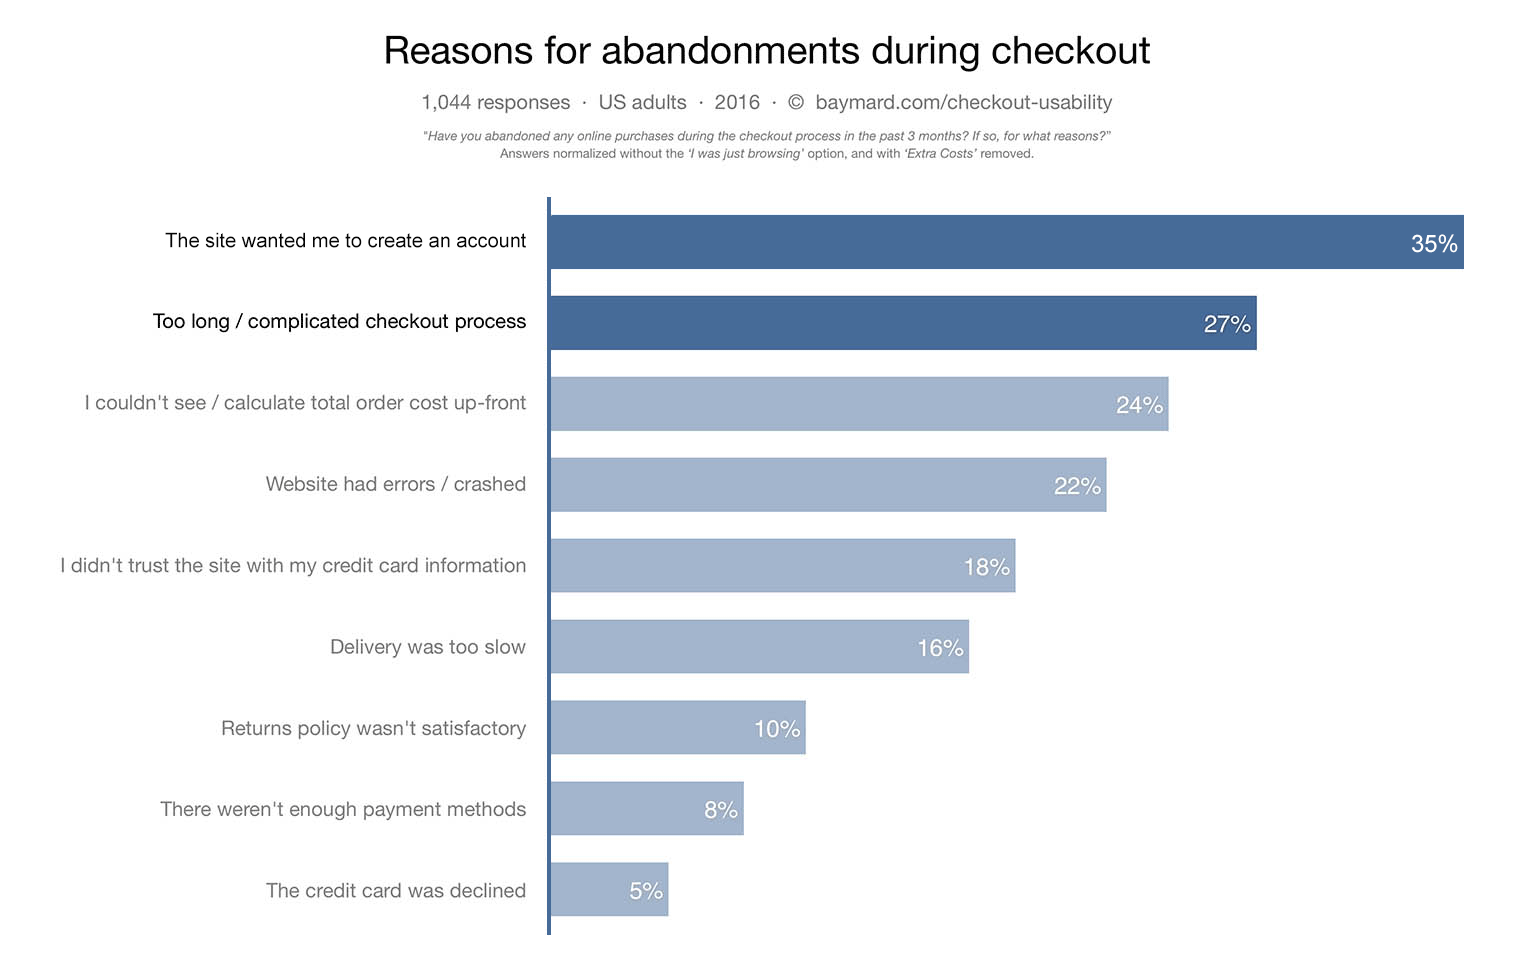 Reasons for shopping cart abandonment during checkout.